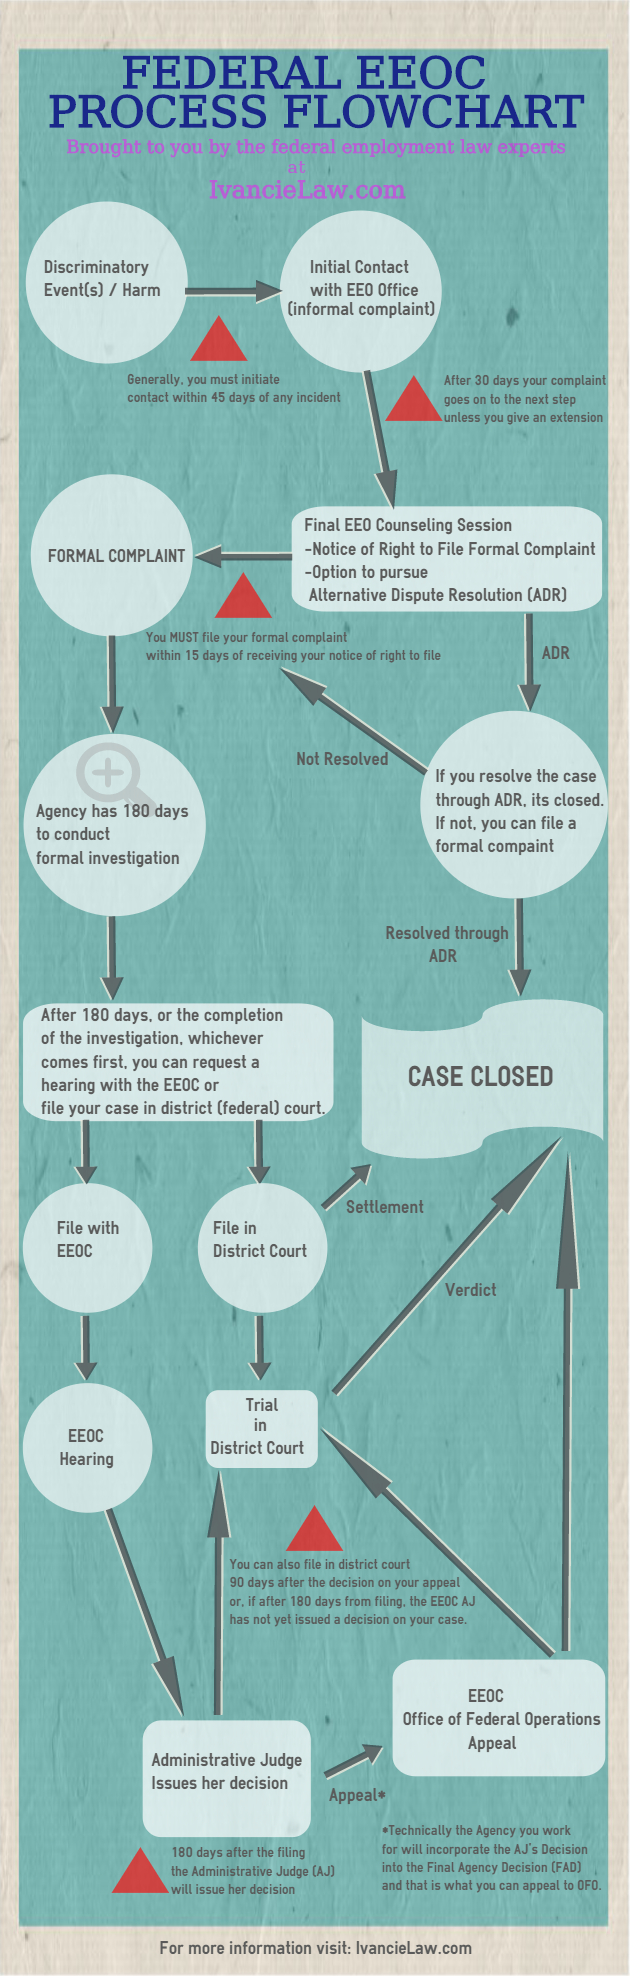 Overview of Federal EEOC Process in a flow chart